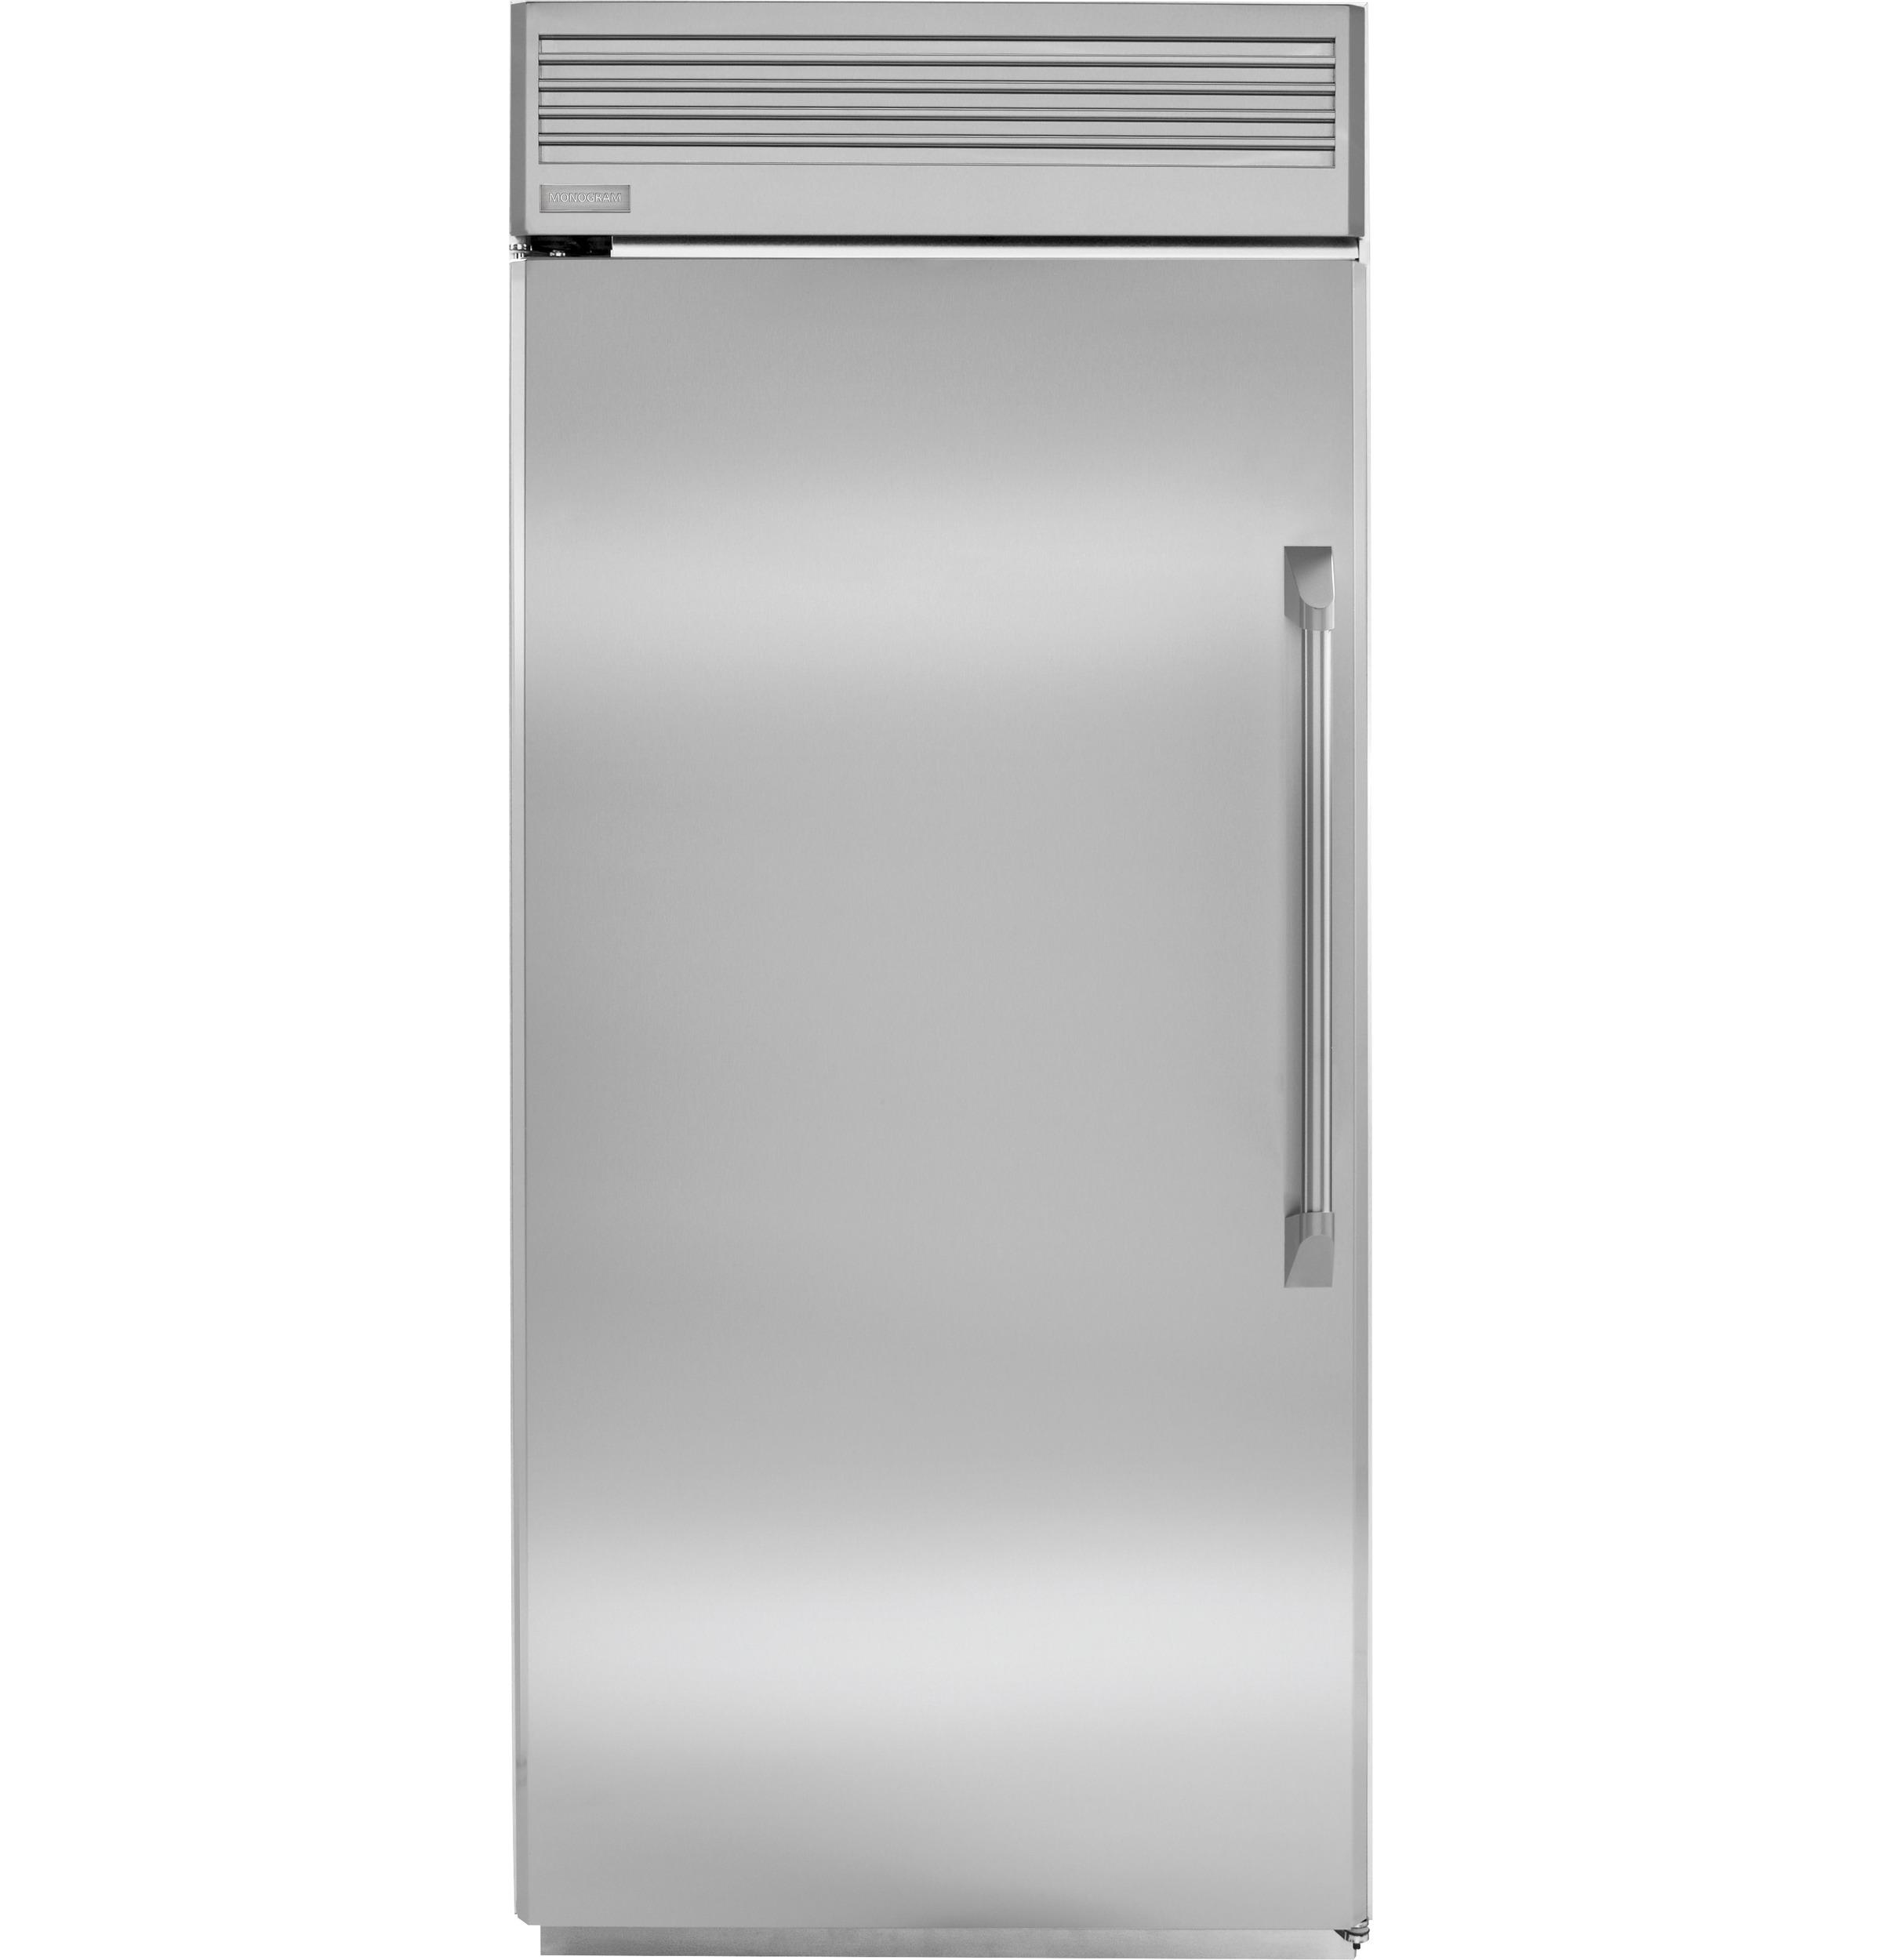 Ge Monogram 36 Professional Built In All Refrigerator With Concealed Halogen